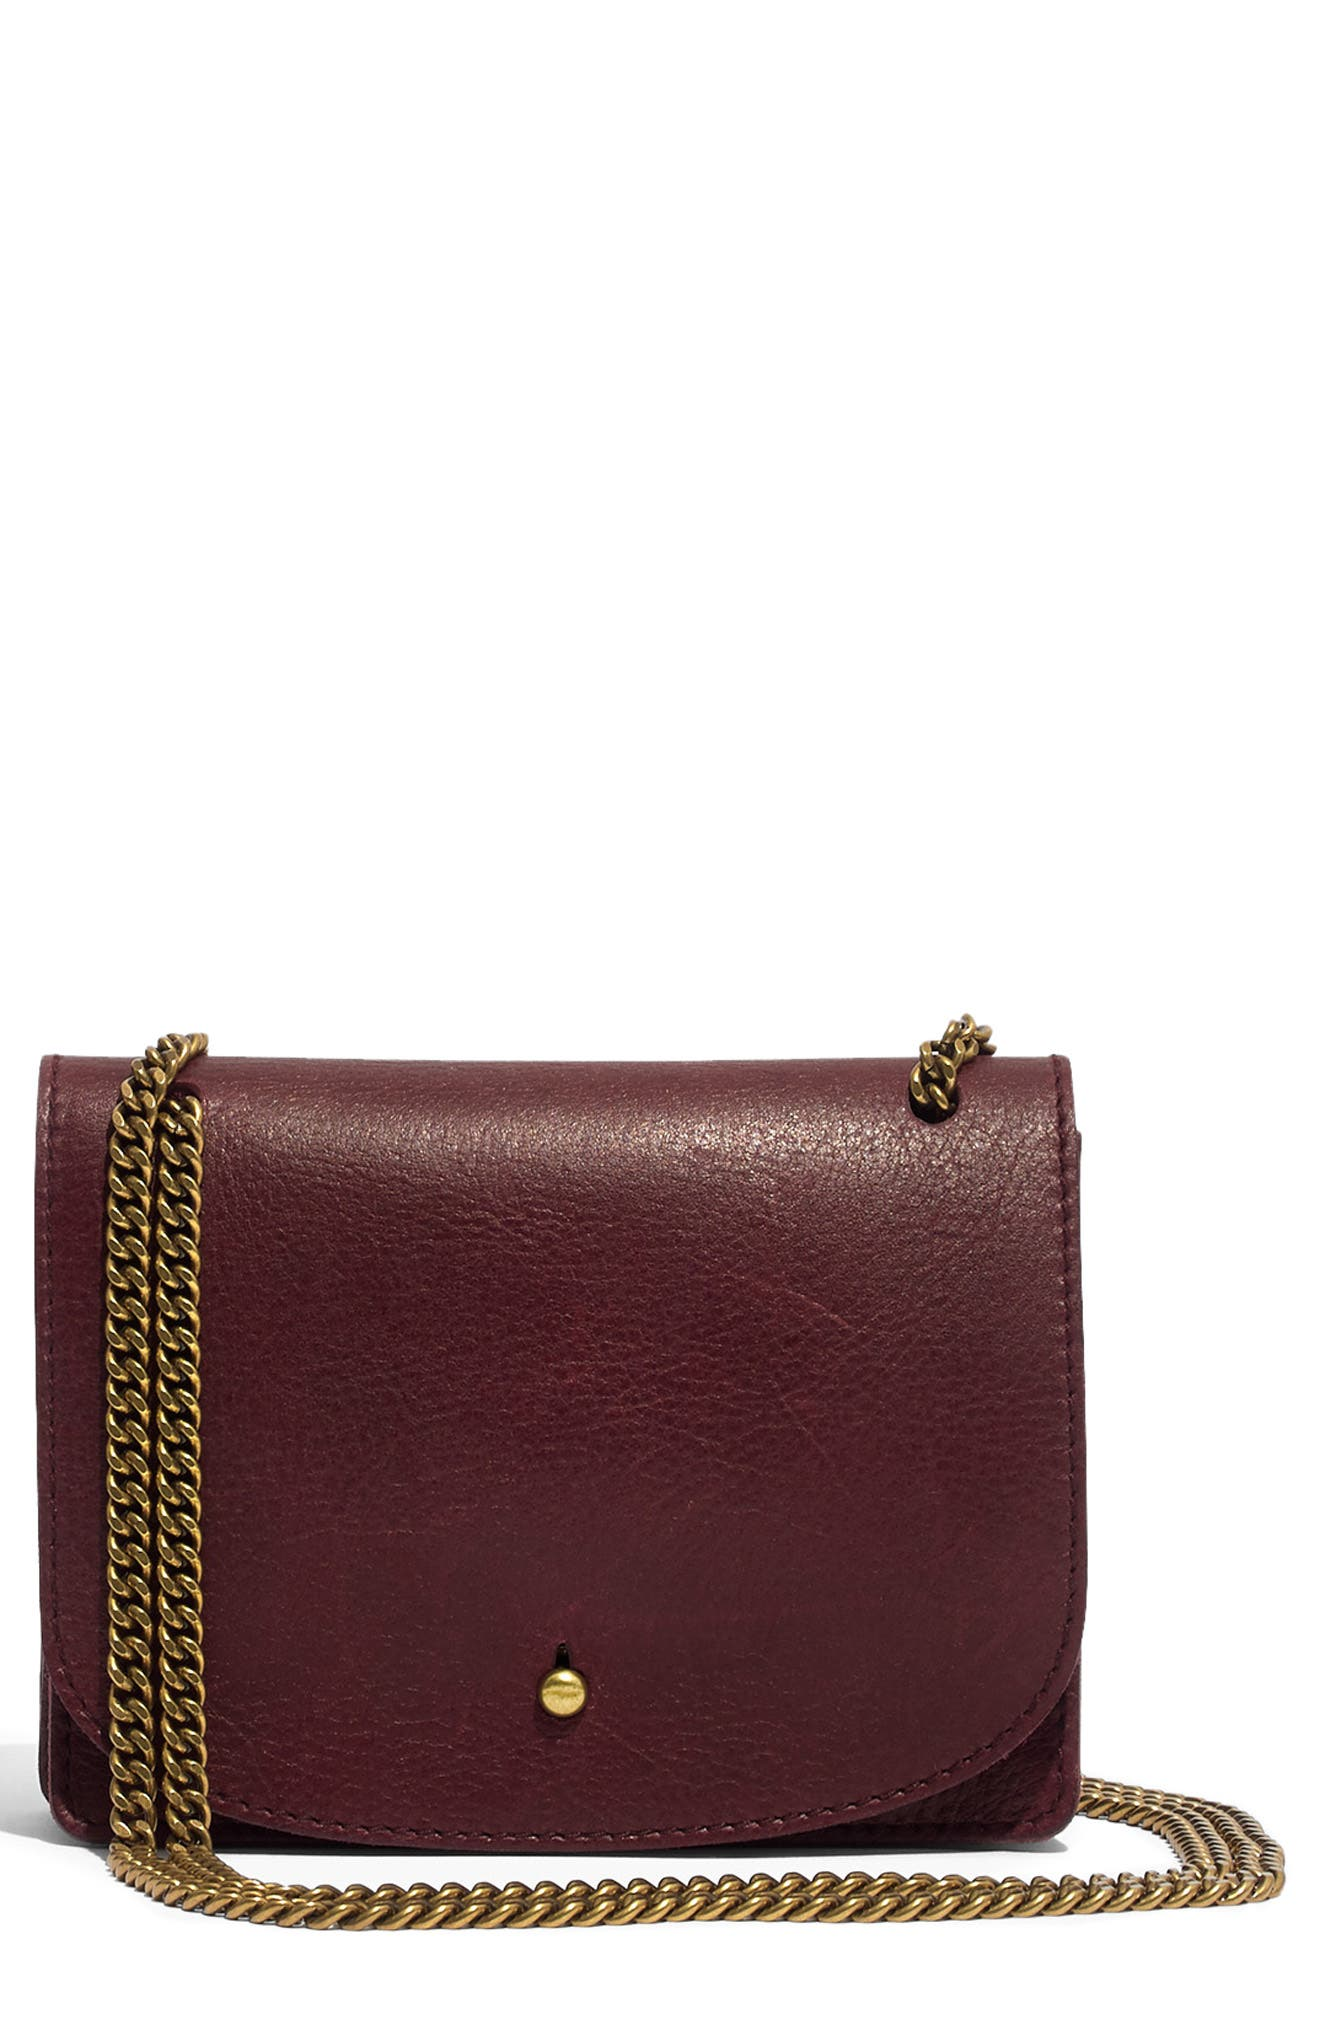 MADEWELL Leather Crossbody Wallet, Main, color, DARK CABERNET